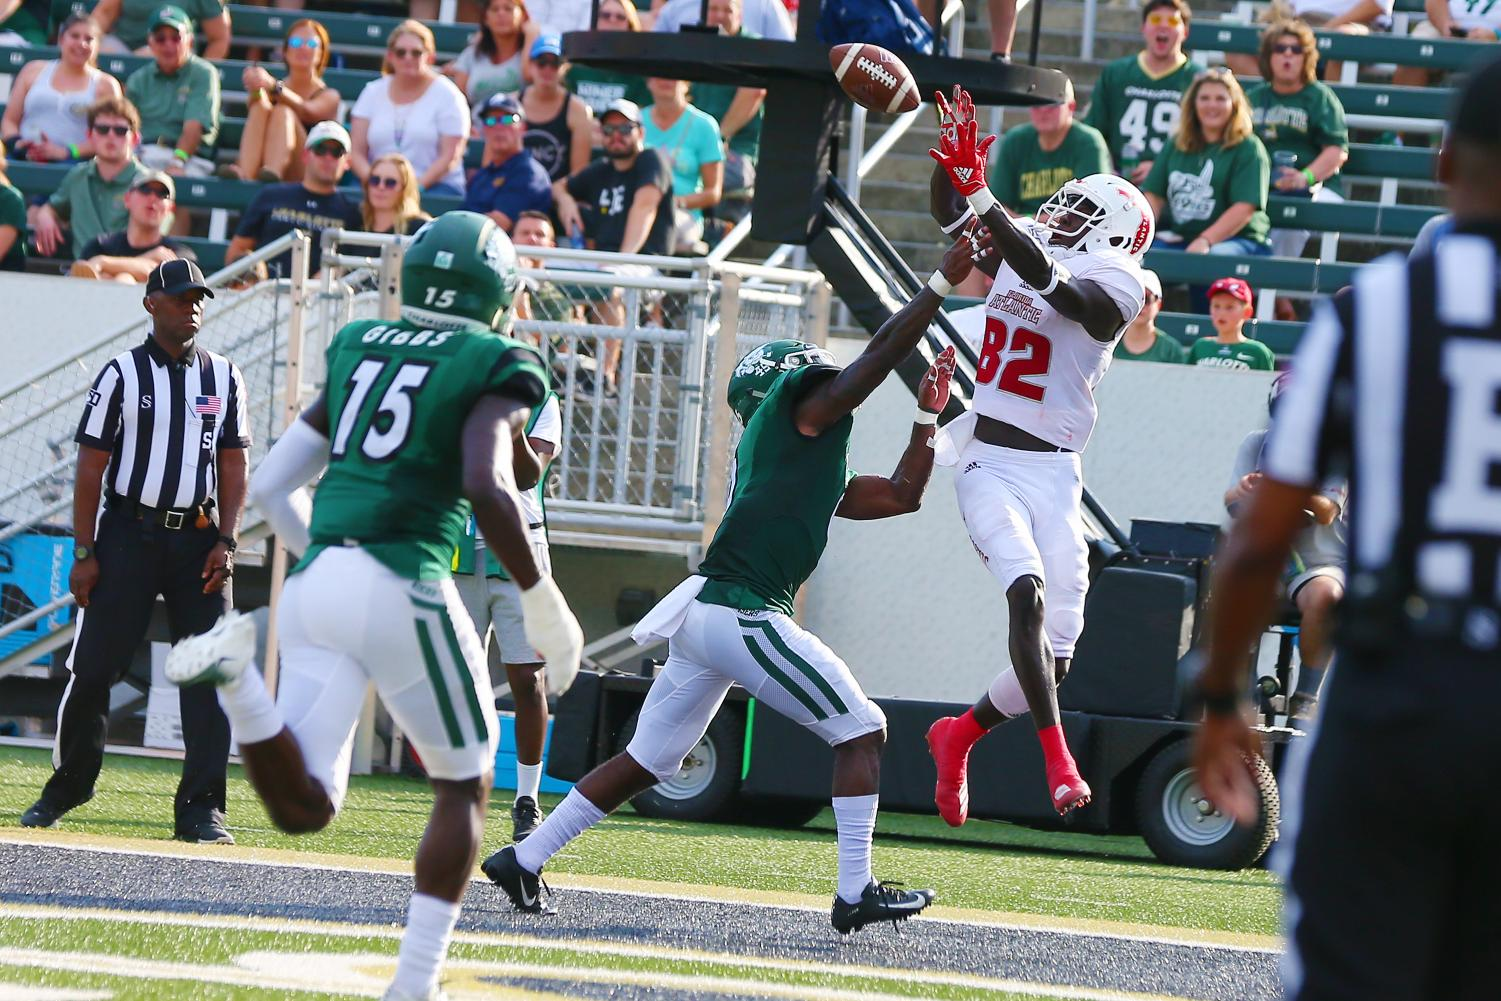 As FAU prepares for action after the bye, the recievers need to stay consistent, especially Tavaris Harrison who recorded a touchdown against Charlotte. Photo courtesy of FAU Athletics.